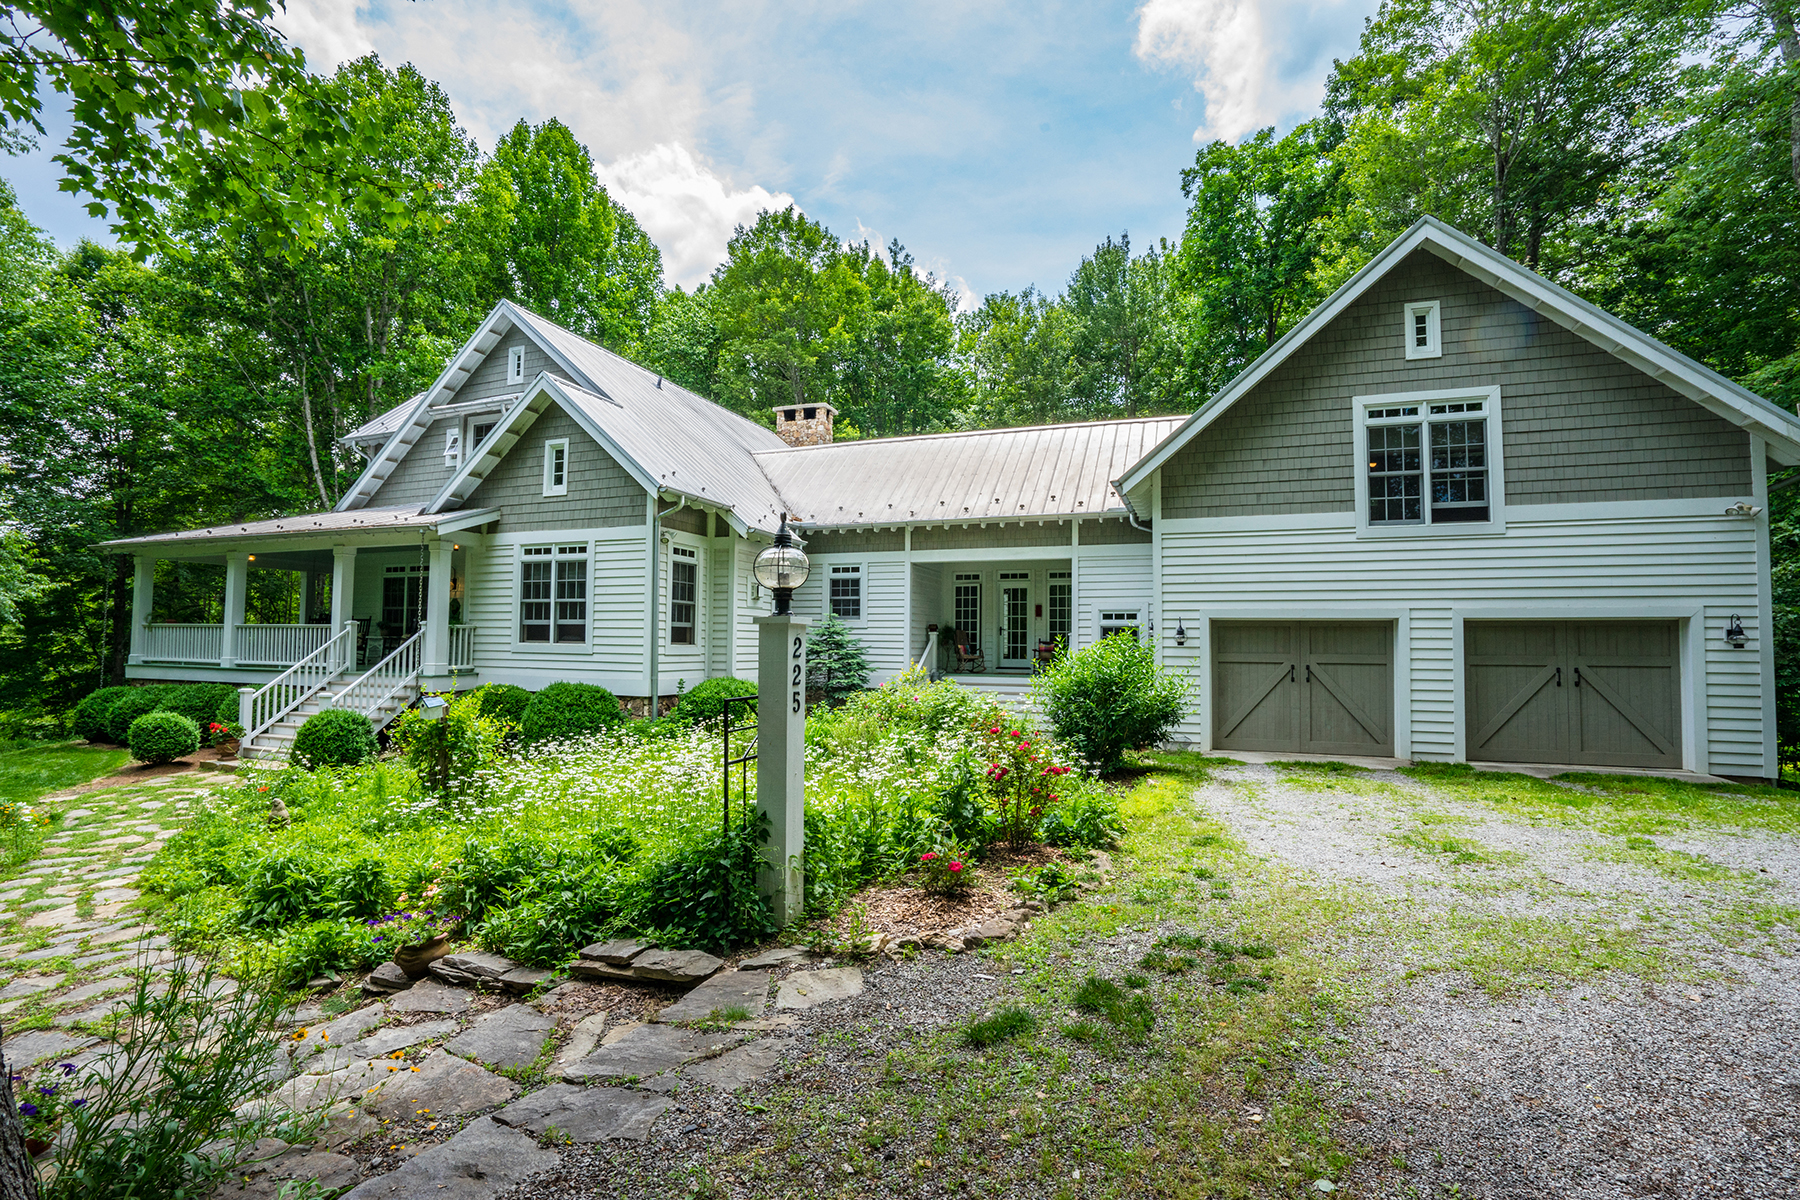 Single Family Home for Sale at CRUMPLER - THE RIDGE AT CHESTNUT HILL 225 Deer Thicket Lane Crumpler, North Carolina, 28617 United States